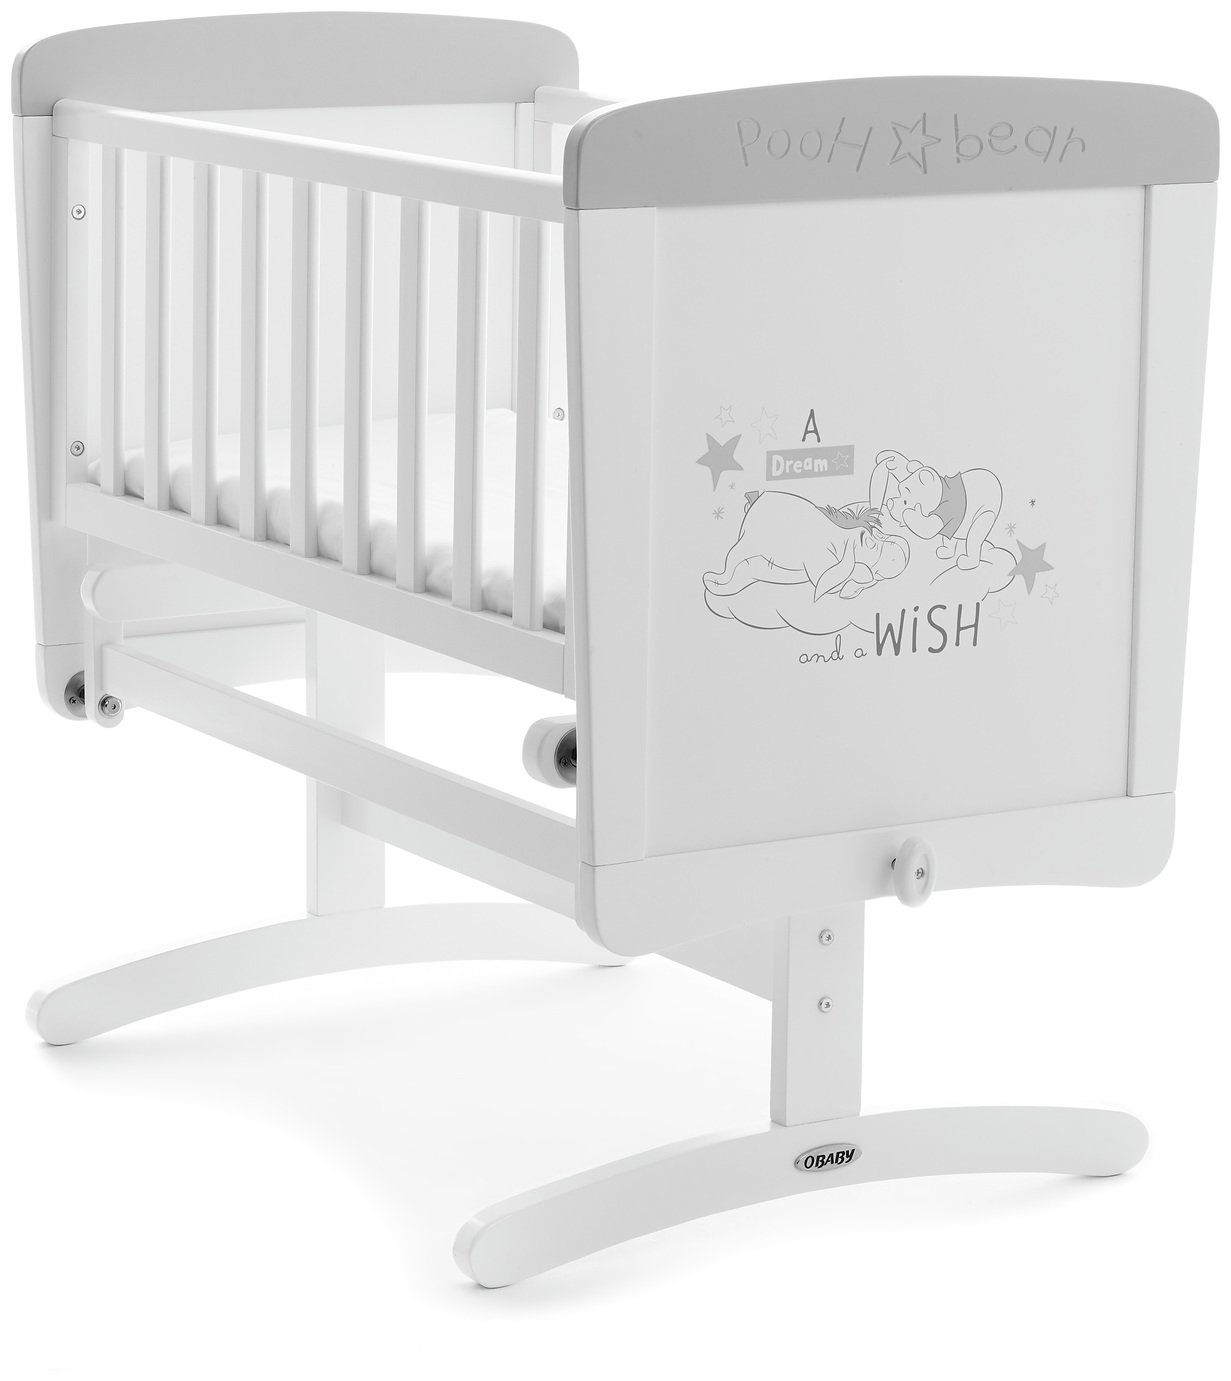 Disney Winnie the Pooh Crib & Mattress- Dreams and Wishes